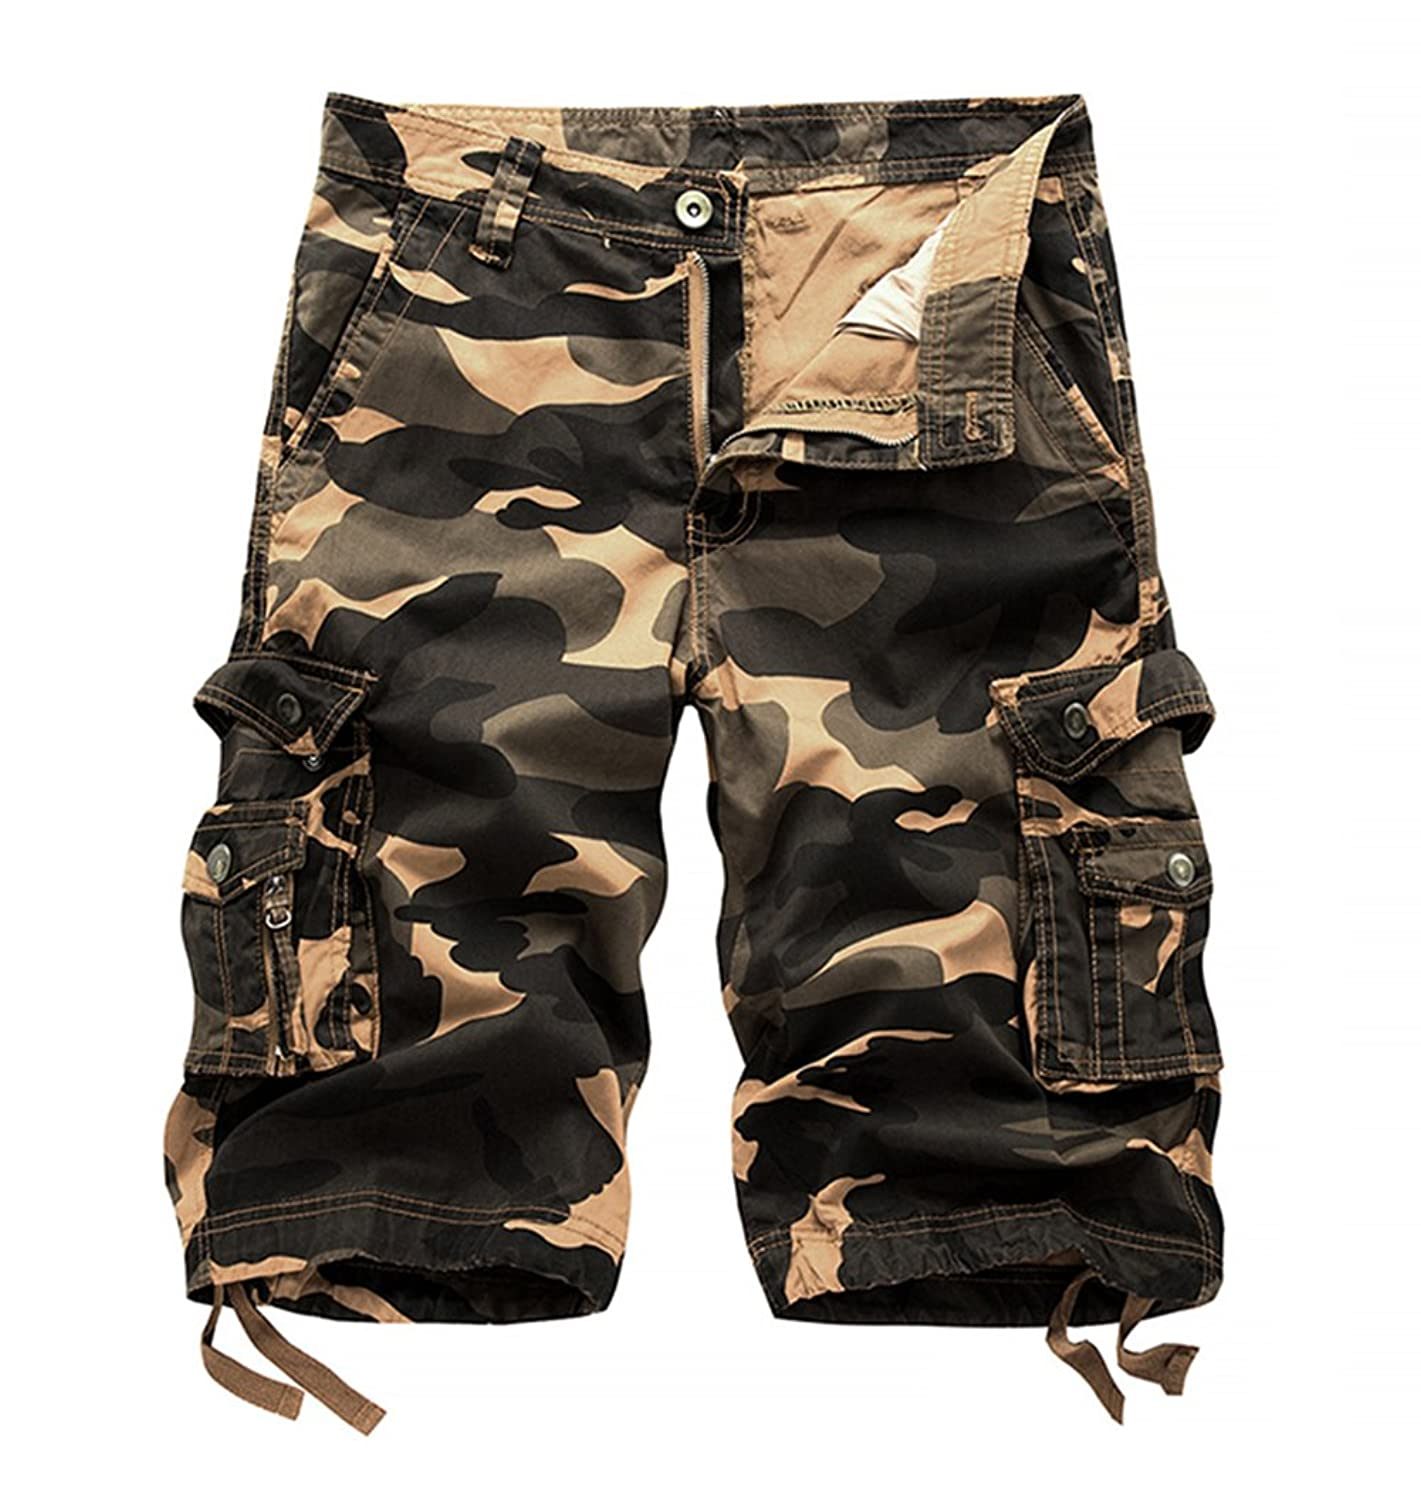 533f63528c Online Cheap wholesale Sunnywood Mens Cargo Shorts Camo Casual Multi-Pocket  Cotton Work Shorts Slim Fit Cargo Suppliers